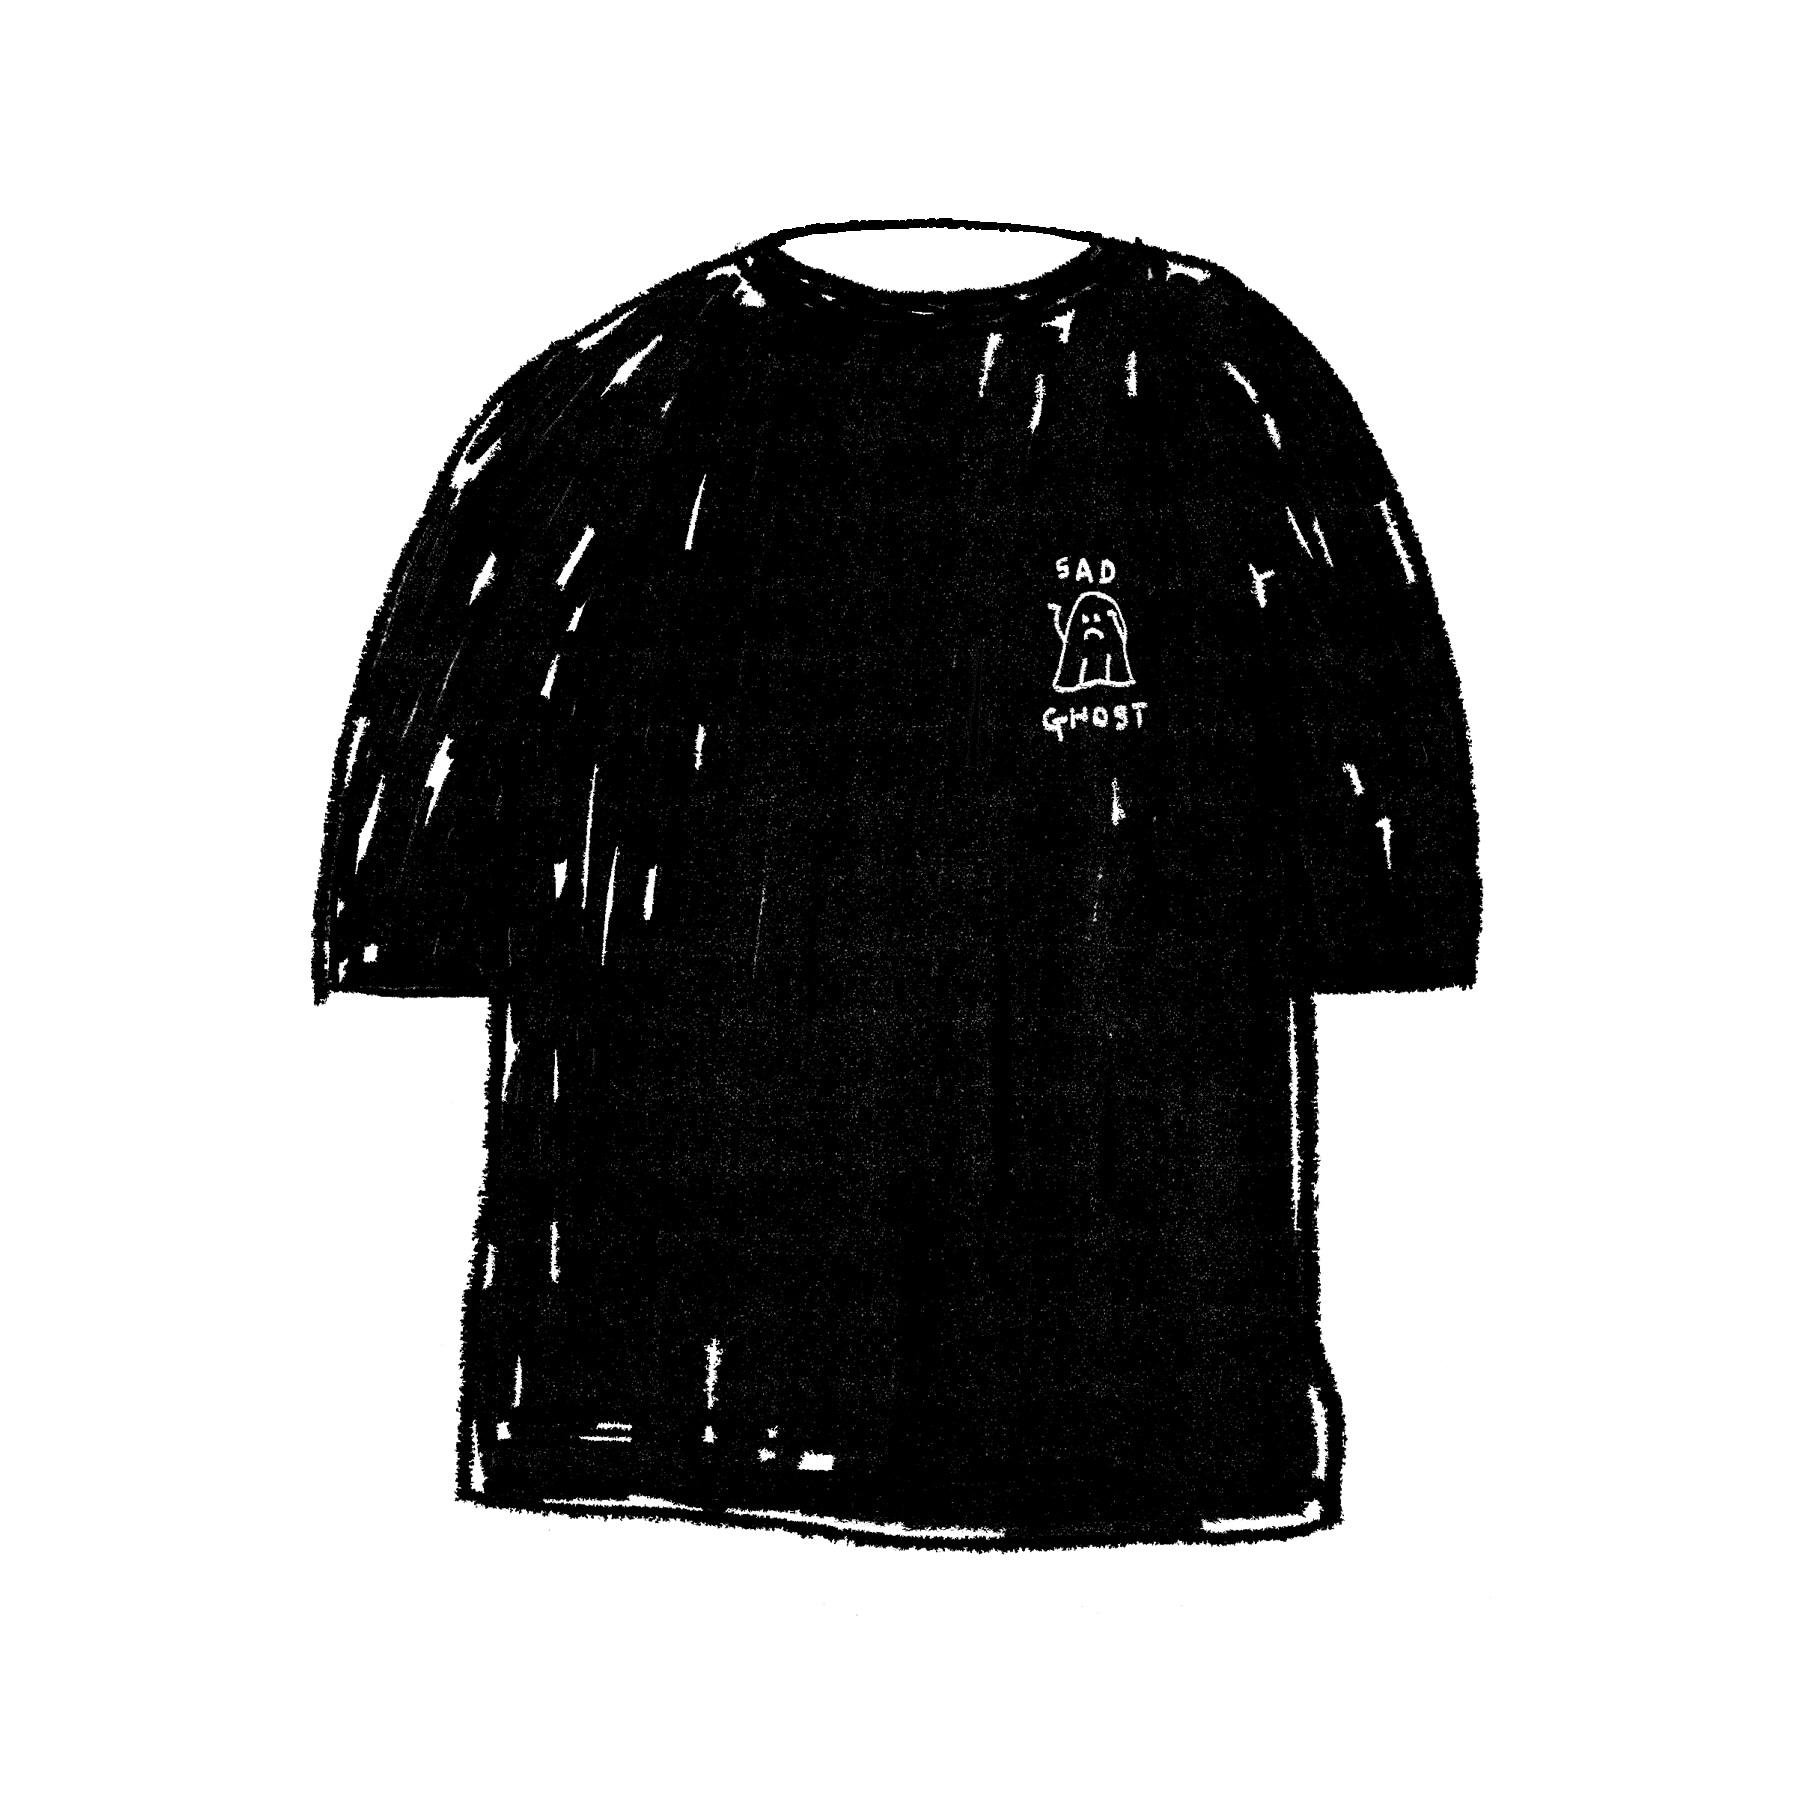 SAD GHOST 1/2 T-SHIRT BLACK